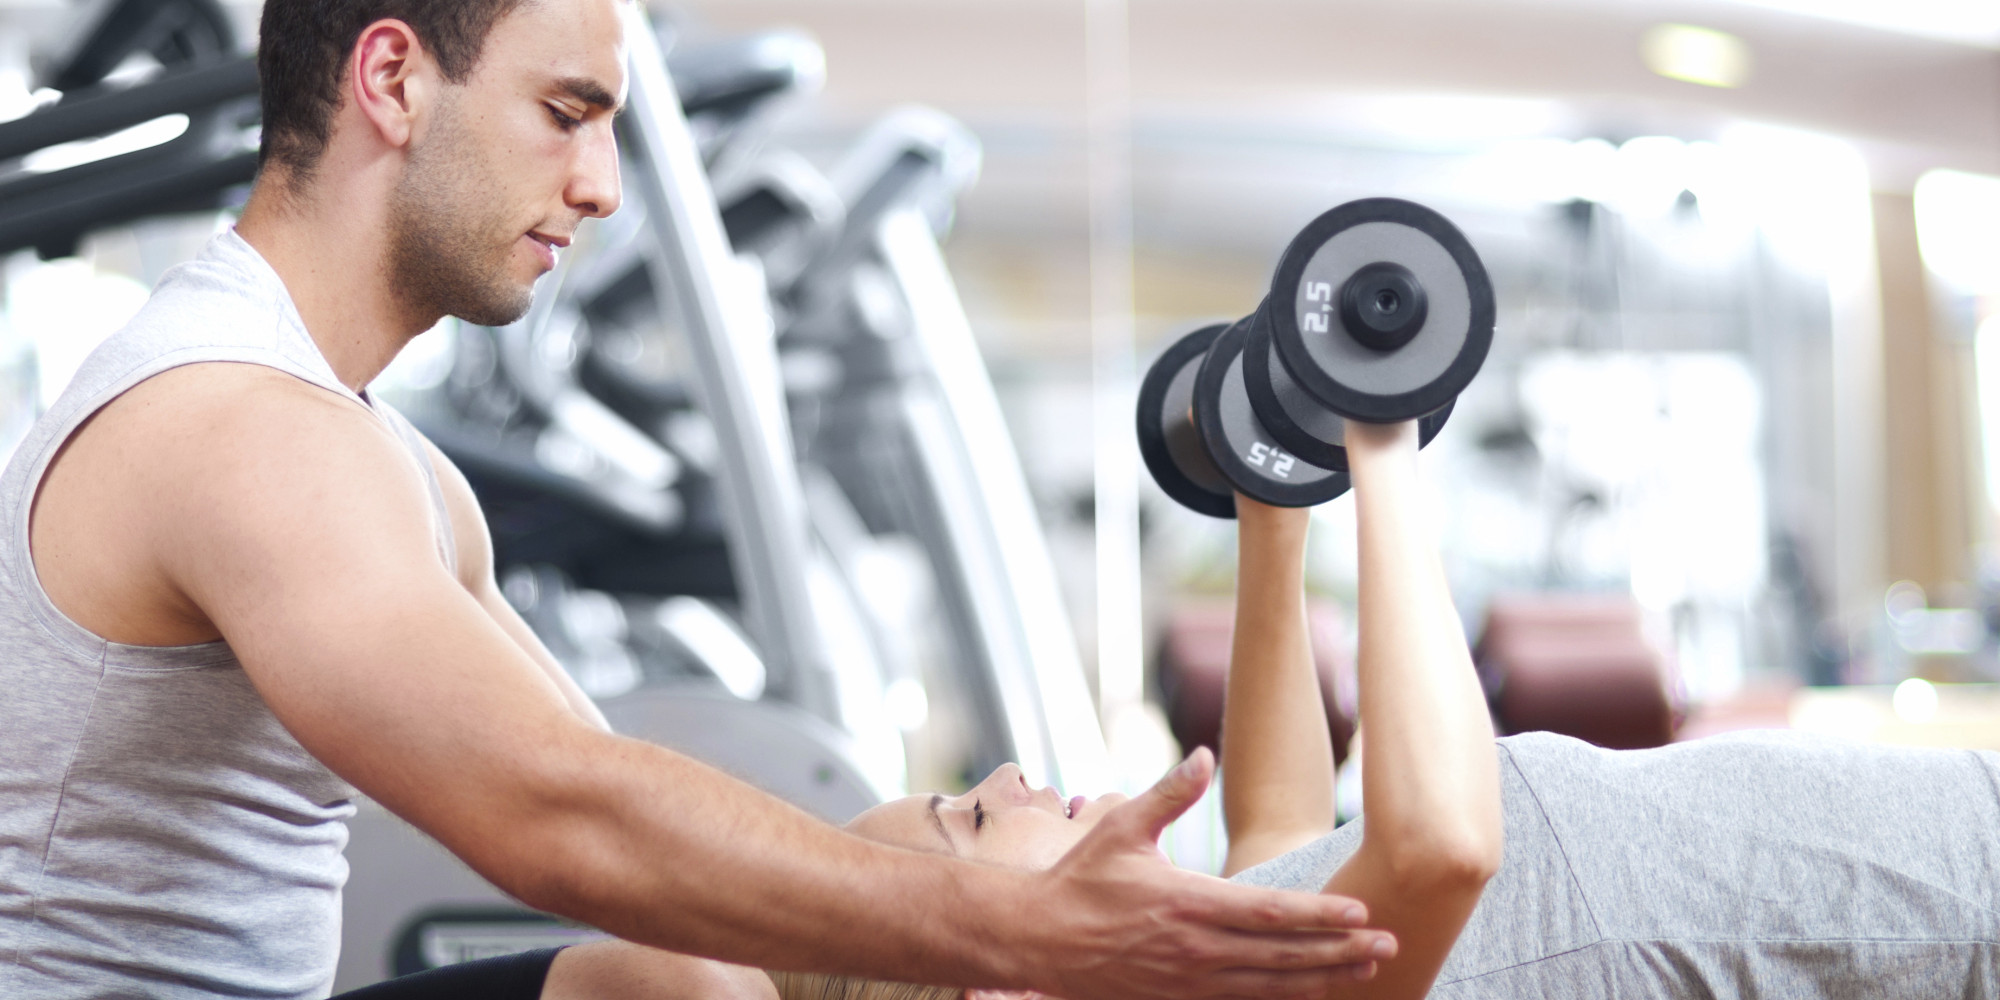 Personal Fitness Trainer - Why You Should Hire One